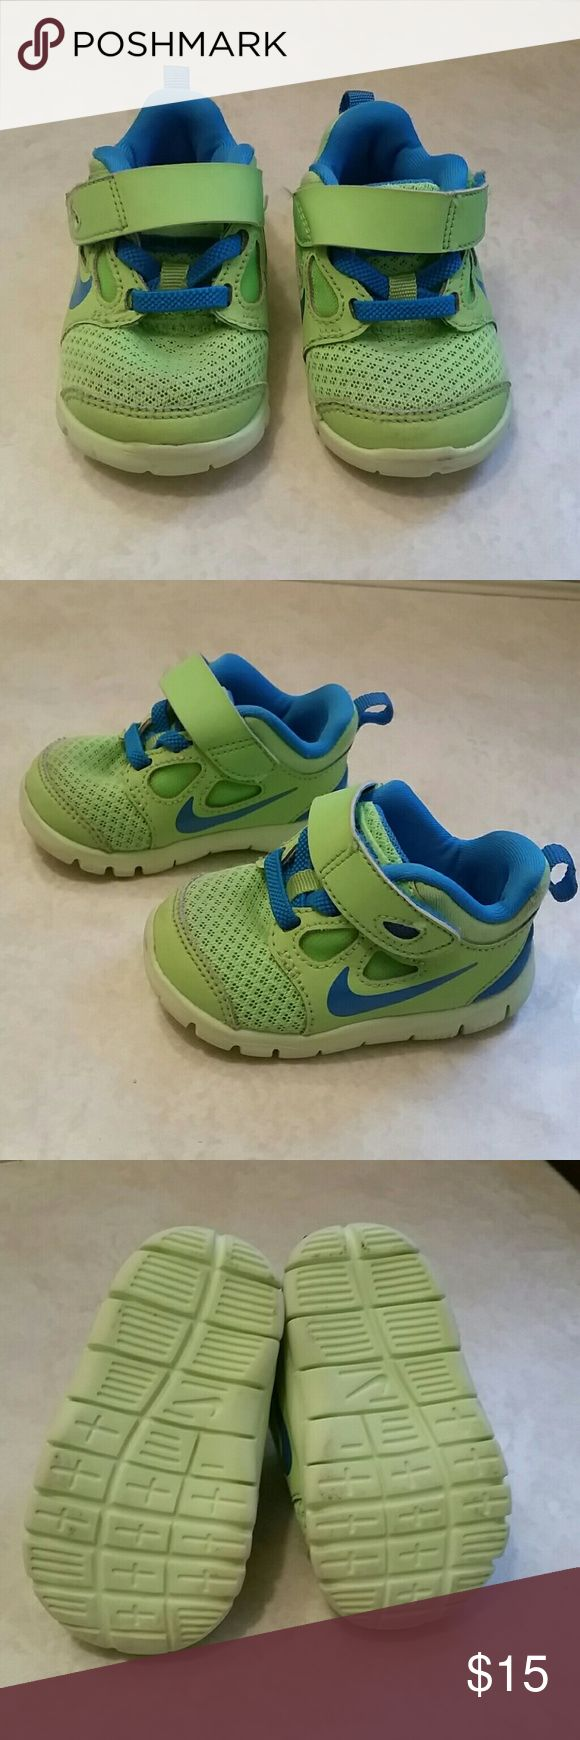 Baby Nike shoes Gently used Nike Shoes Baby & Walker